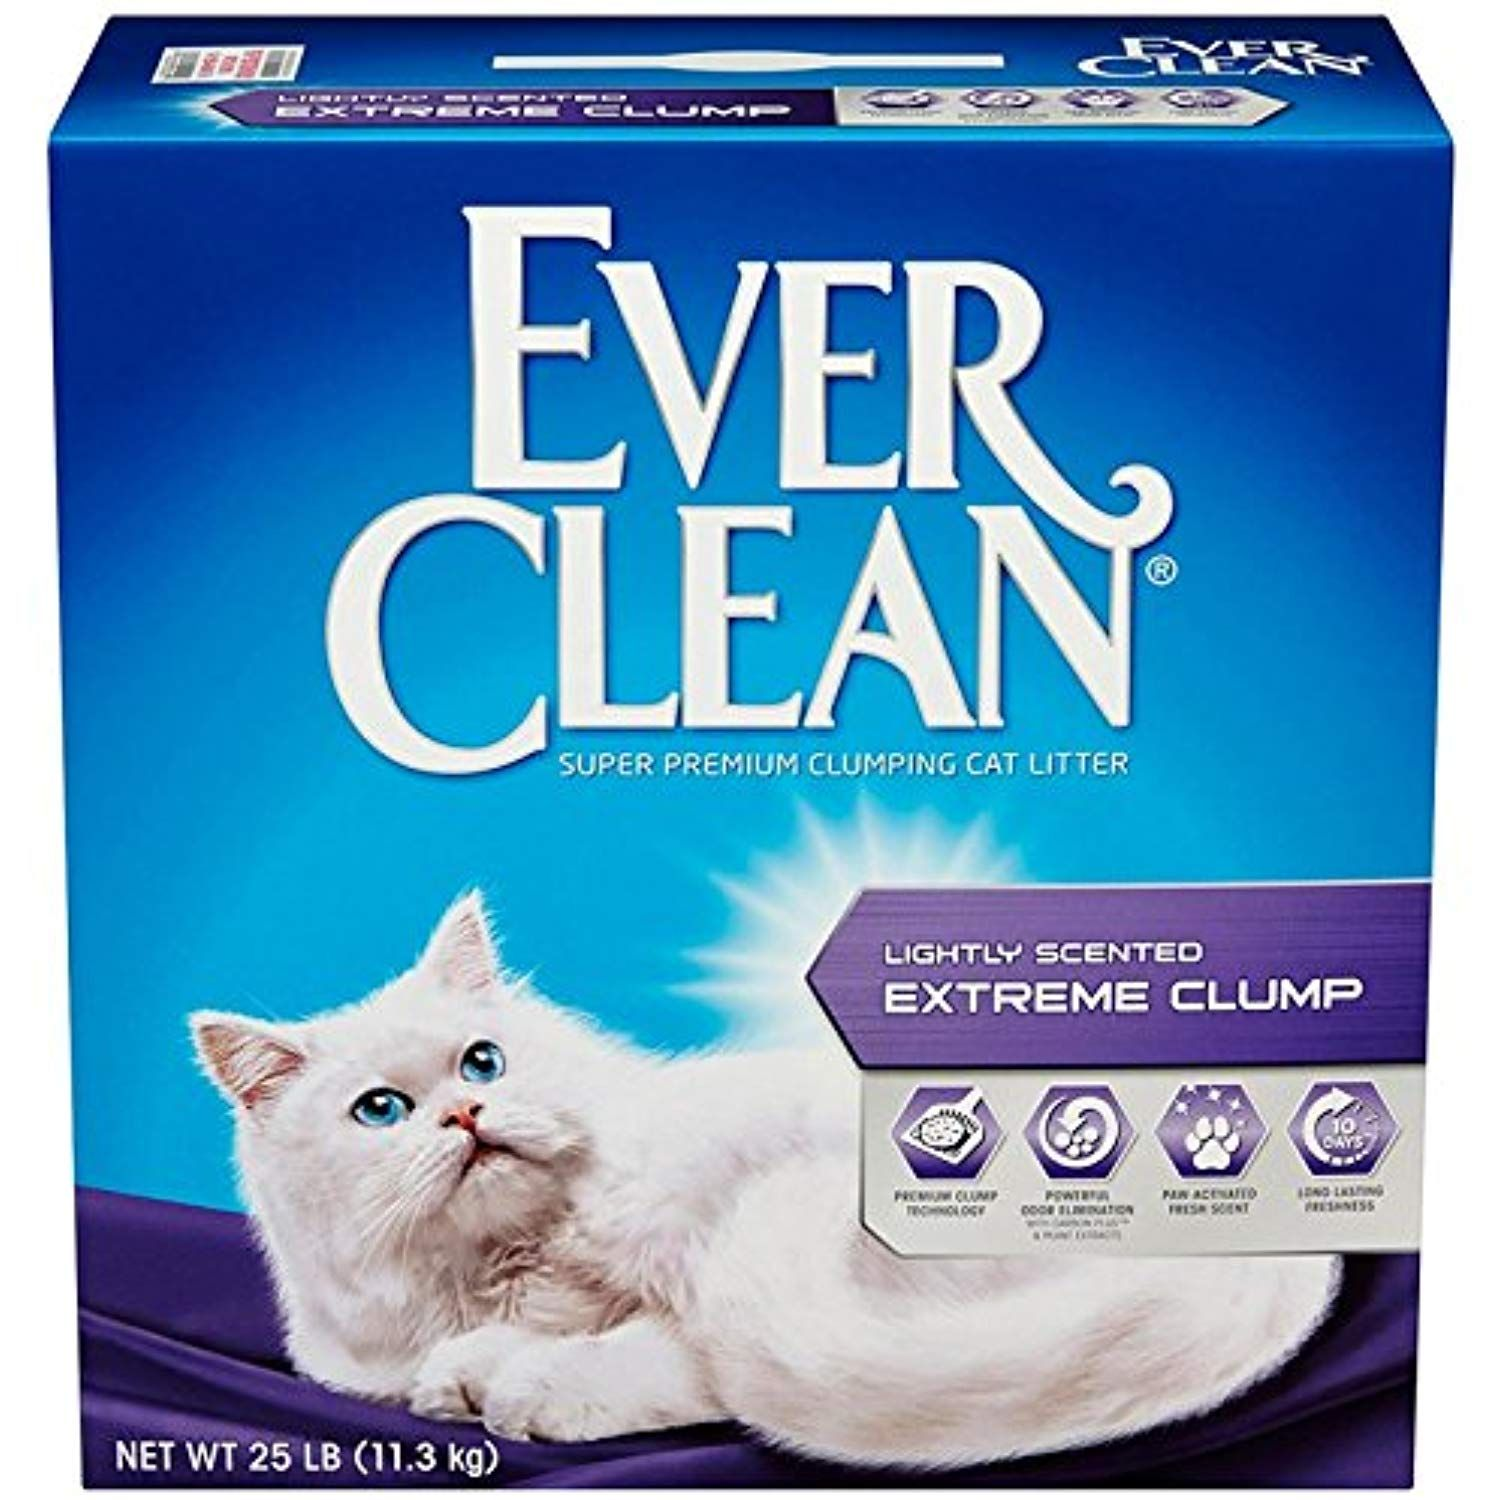 Ever Clean Extreme Clump, Clumping Cat Litter, Scented, 25